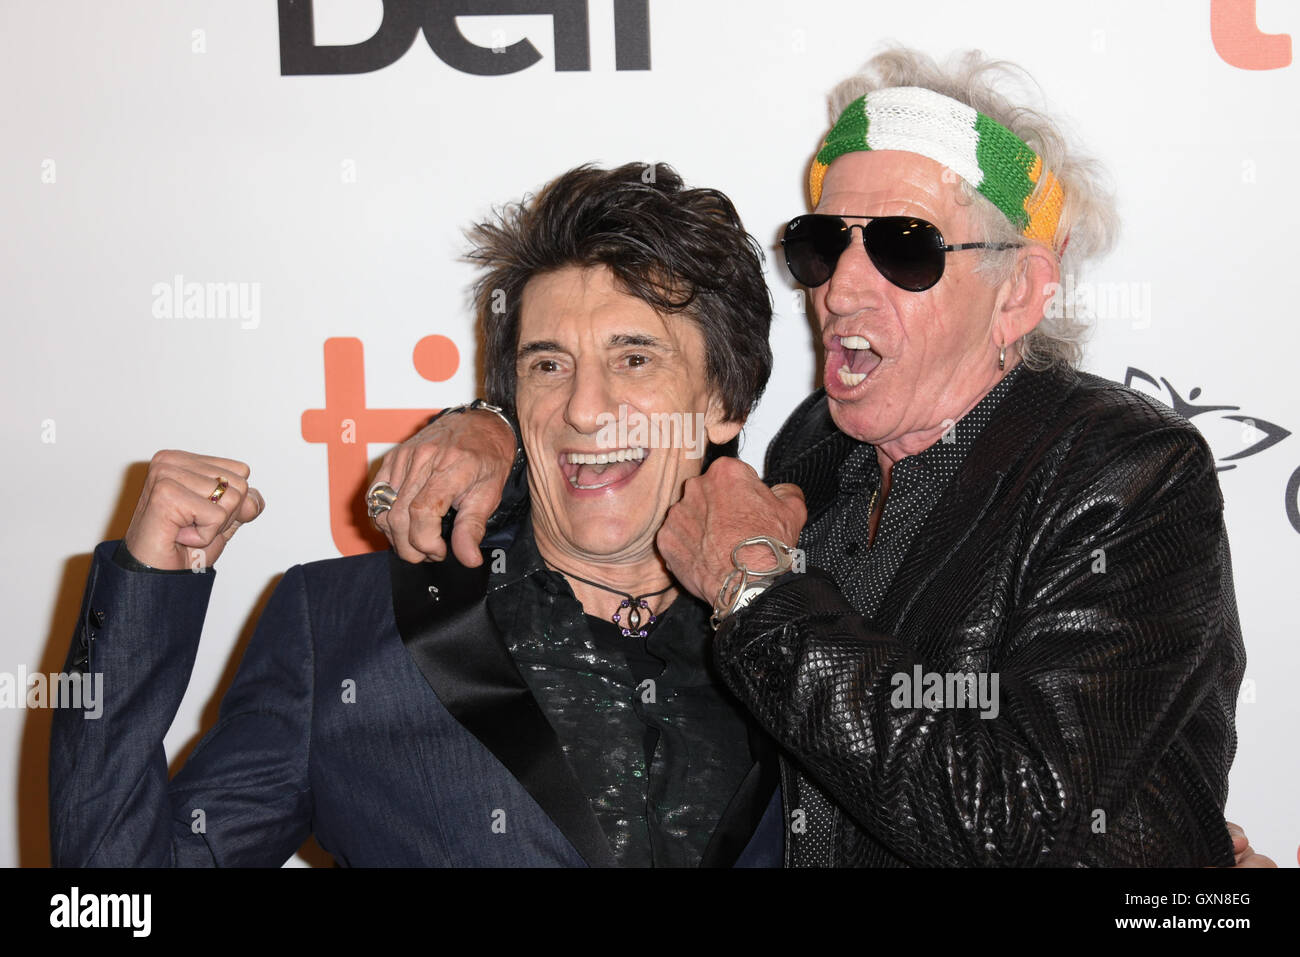 Toronto, Ontario, Canada. 16th Sep, 2016. The Rollings Stones guitarists KEITH RICHARDS and RONNIE WOOD attend the - Stock Image